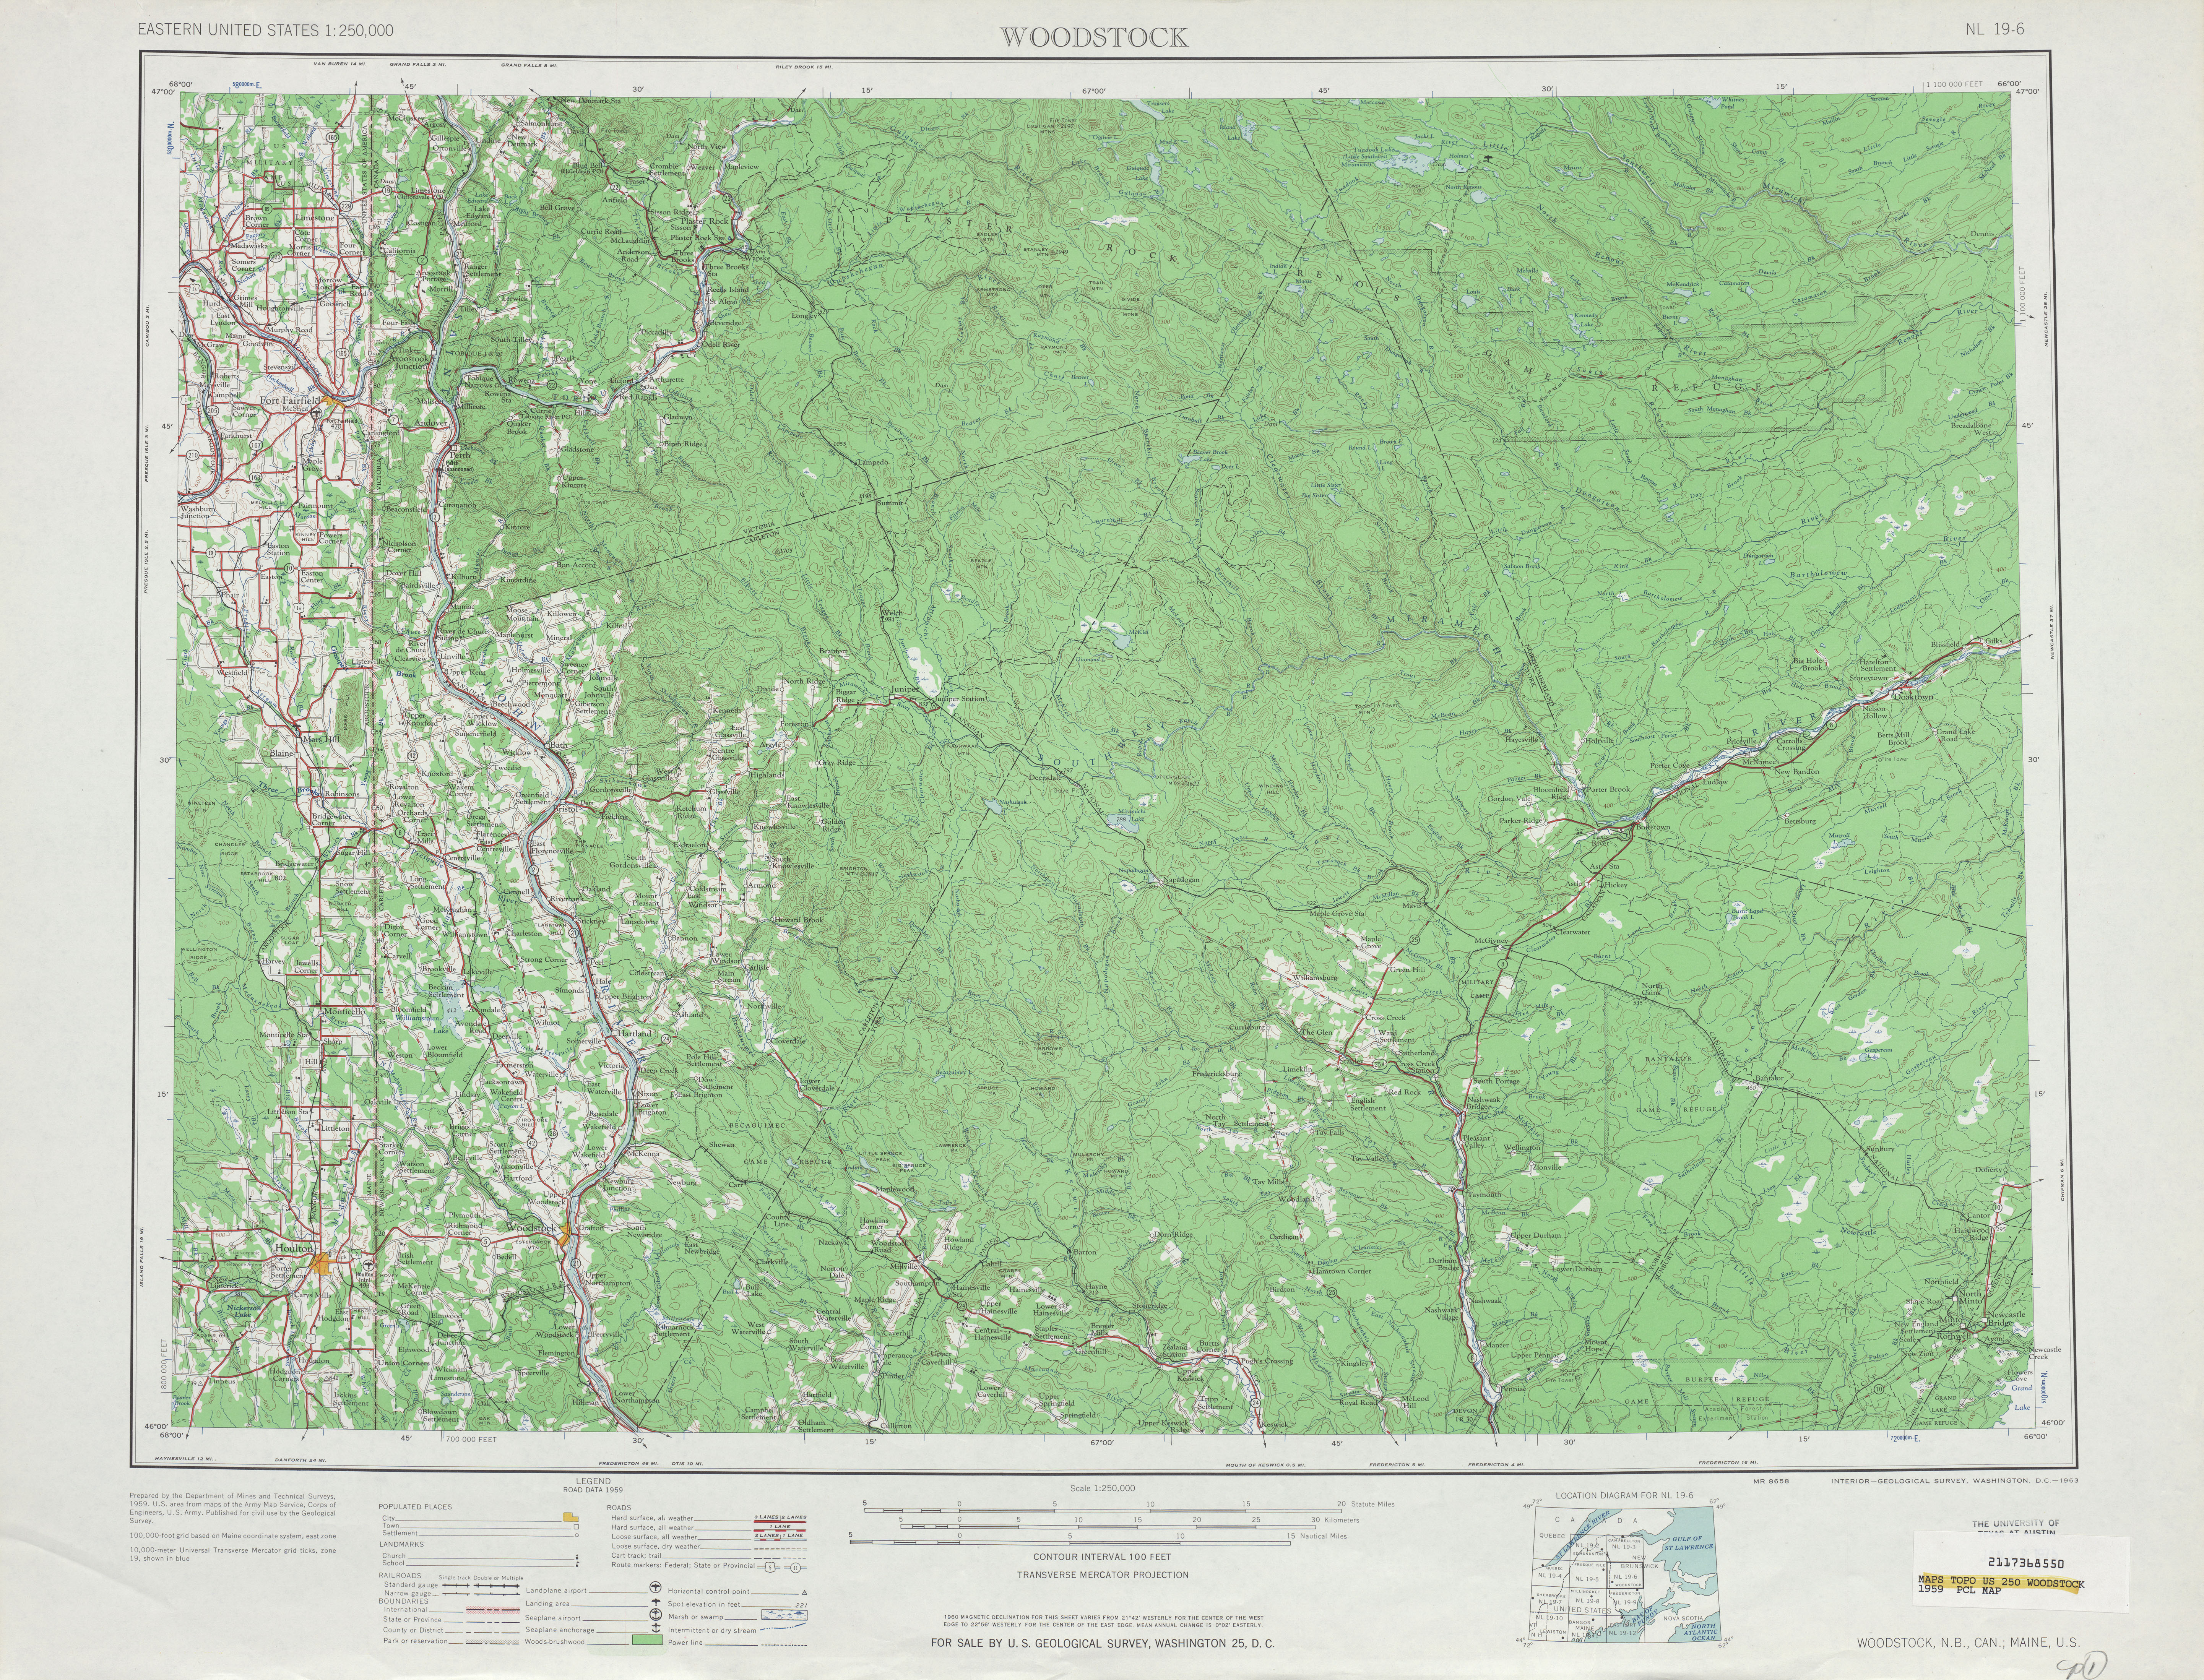 Maps Of Woodstock Topographic Map Sheet United States 1959 Mapa